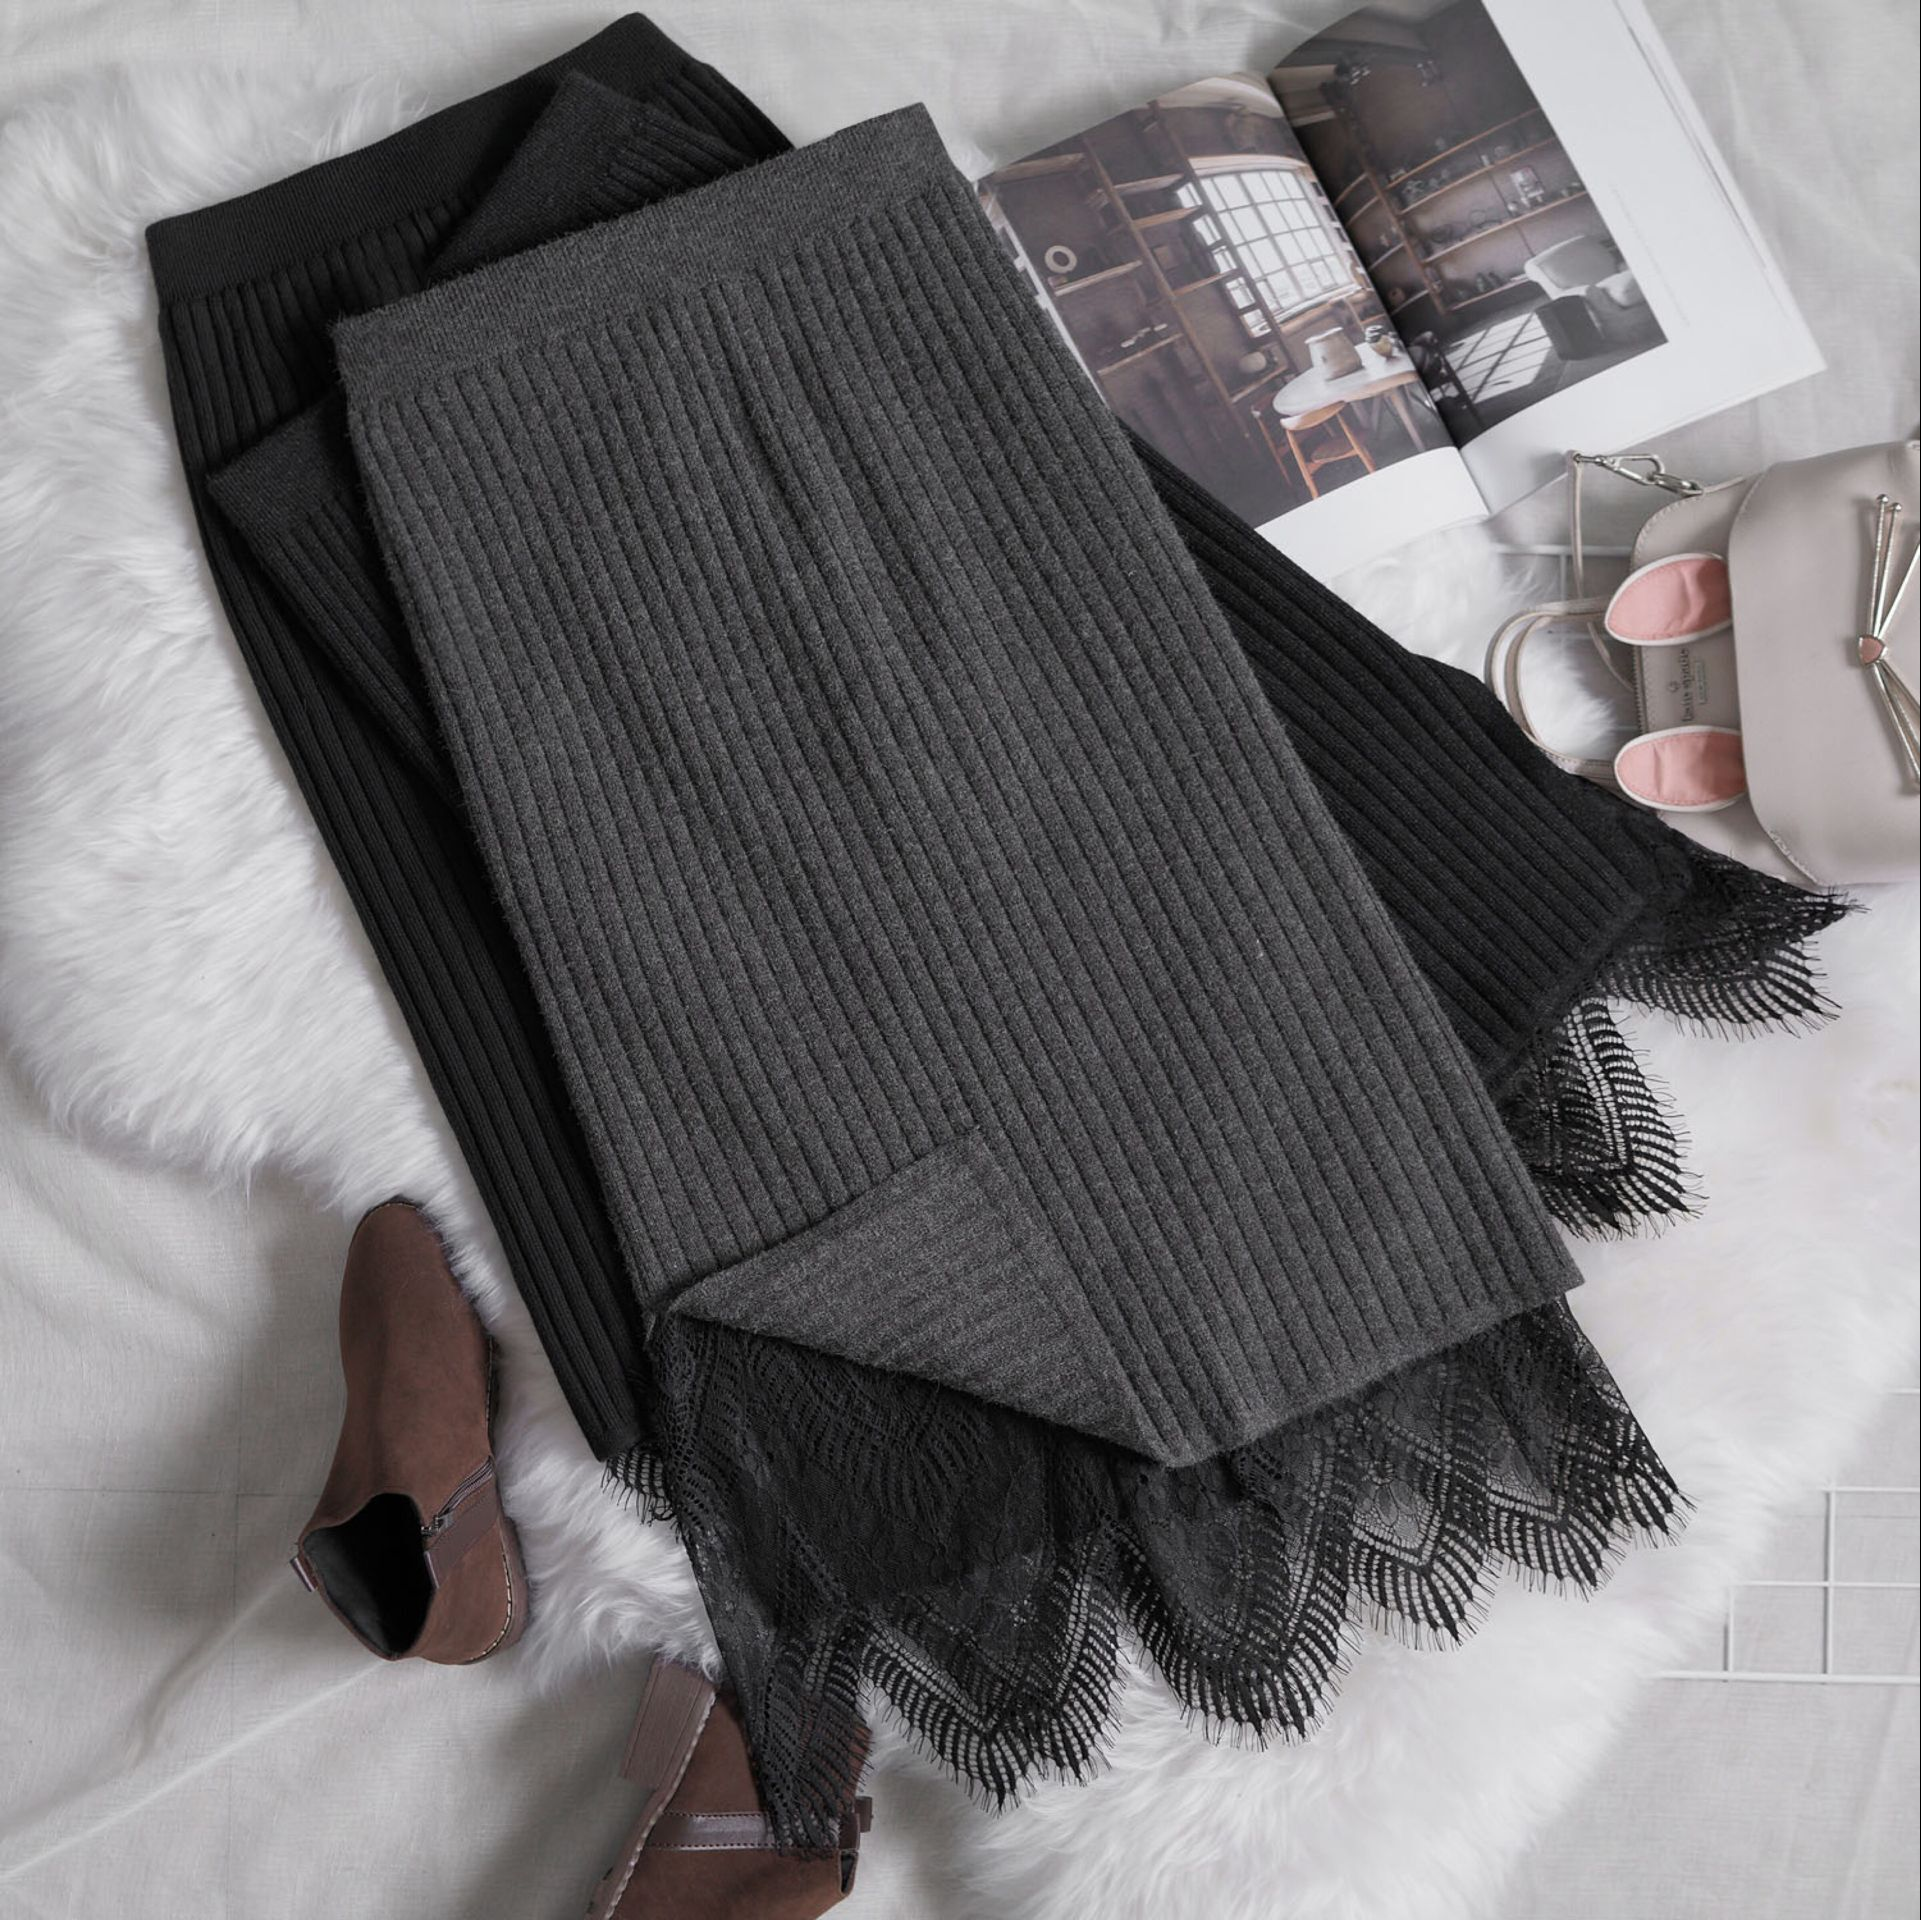 2018 autumn fashion maternity lace knit skirt care belly straight stretch fancy skirt for pregnant women prgnancy clothing plus side slit knit pencil skirt